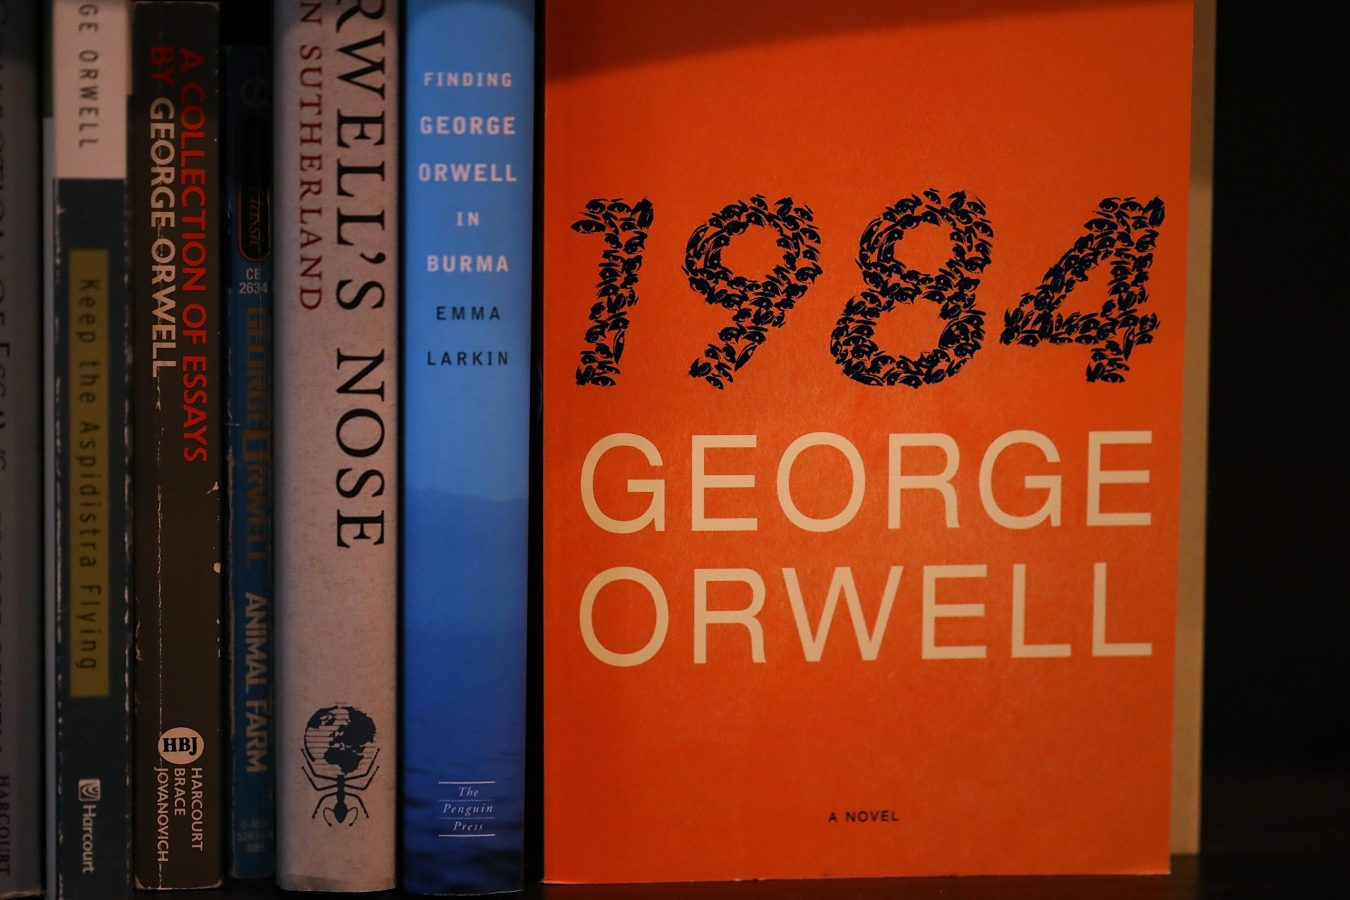 George Orwell's Dystopian Novel 1984 Tops Best Seller LIst, Publisher Orders Additional Printing